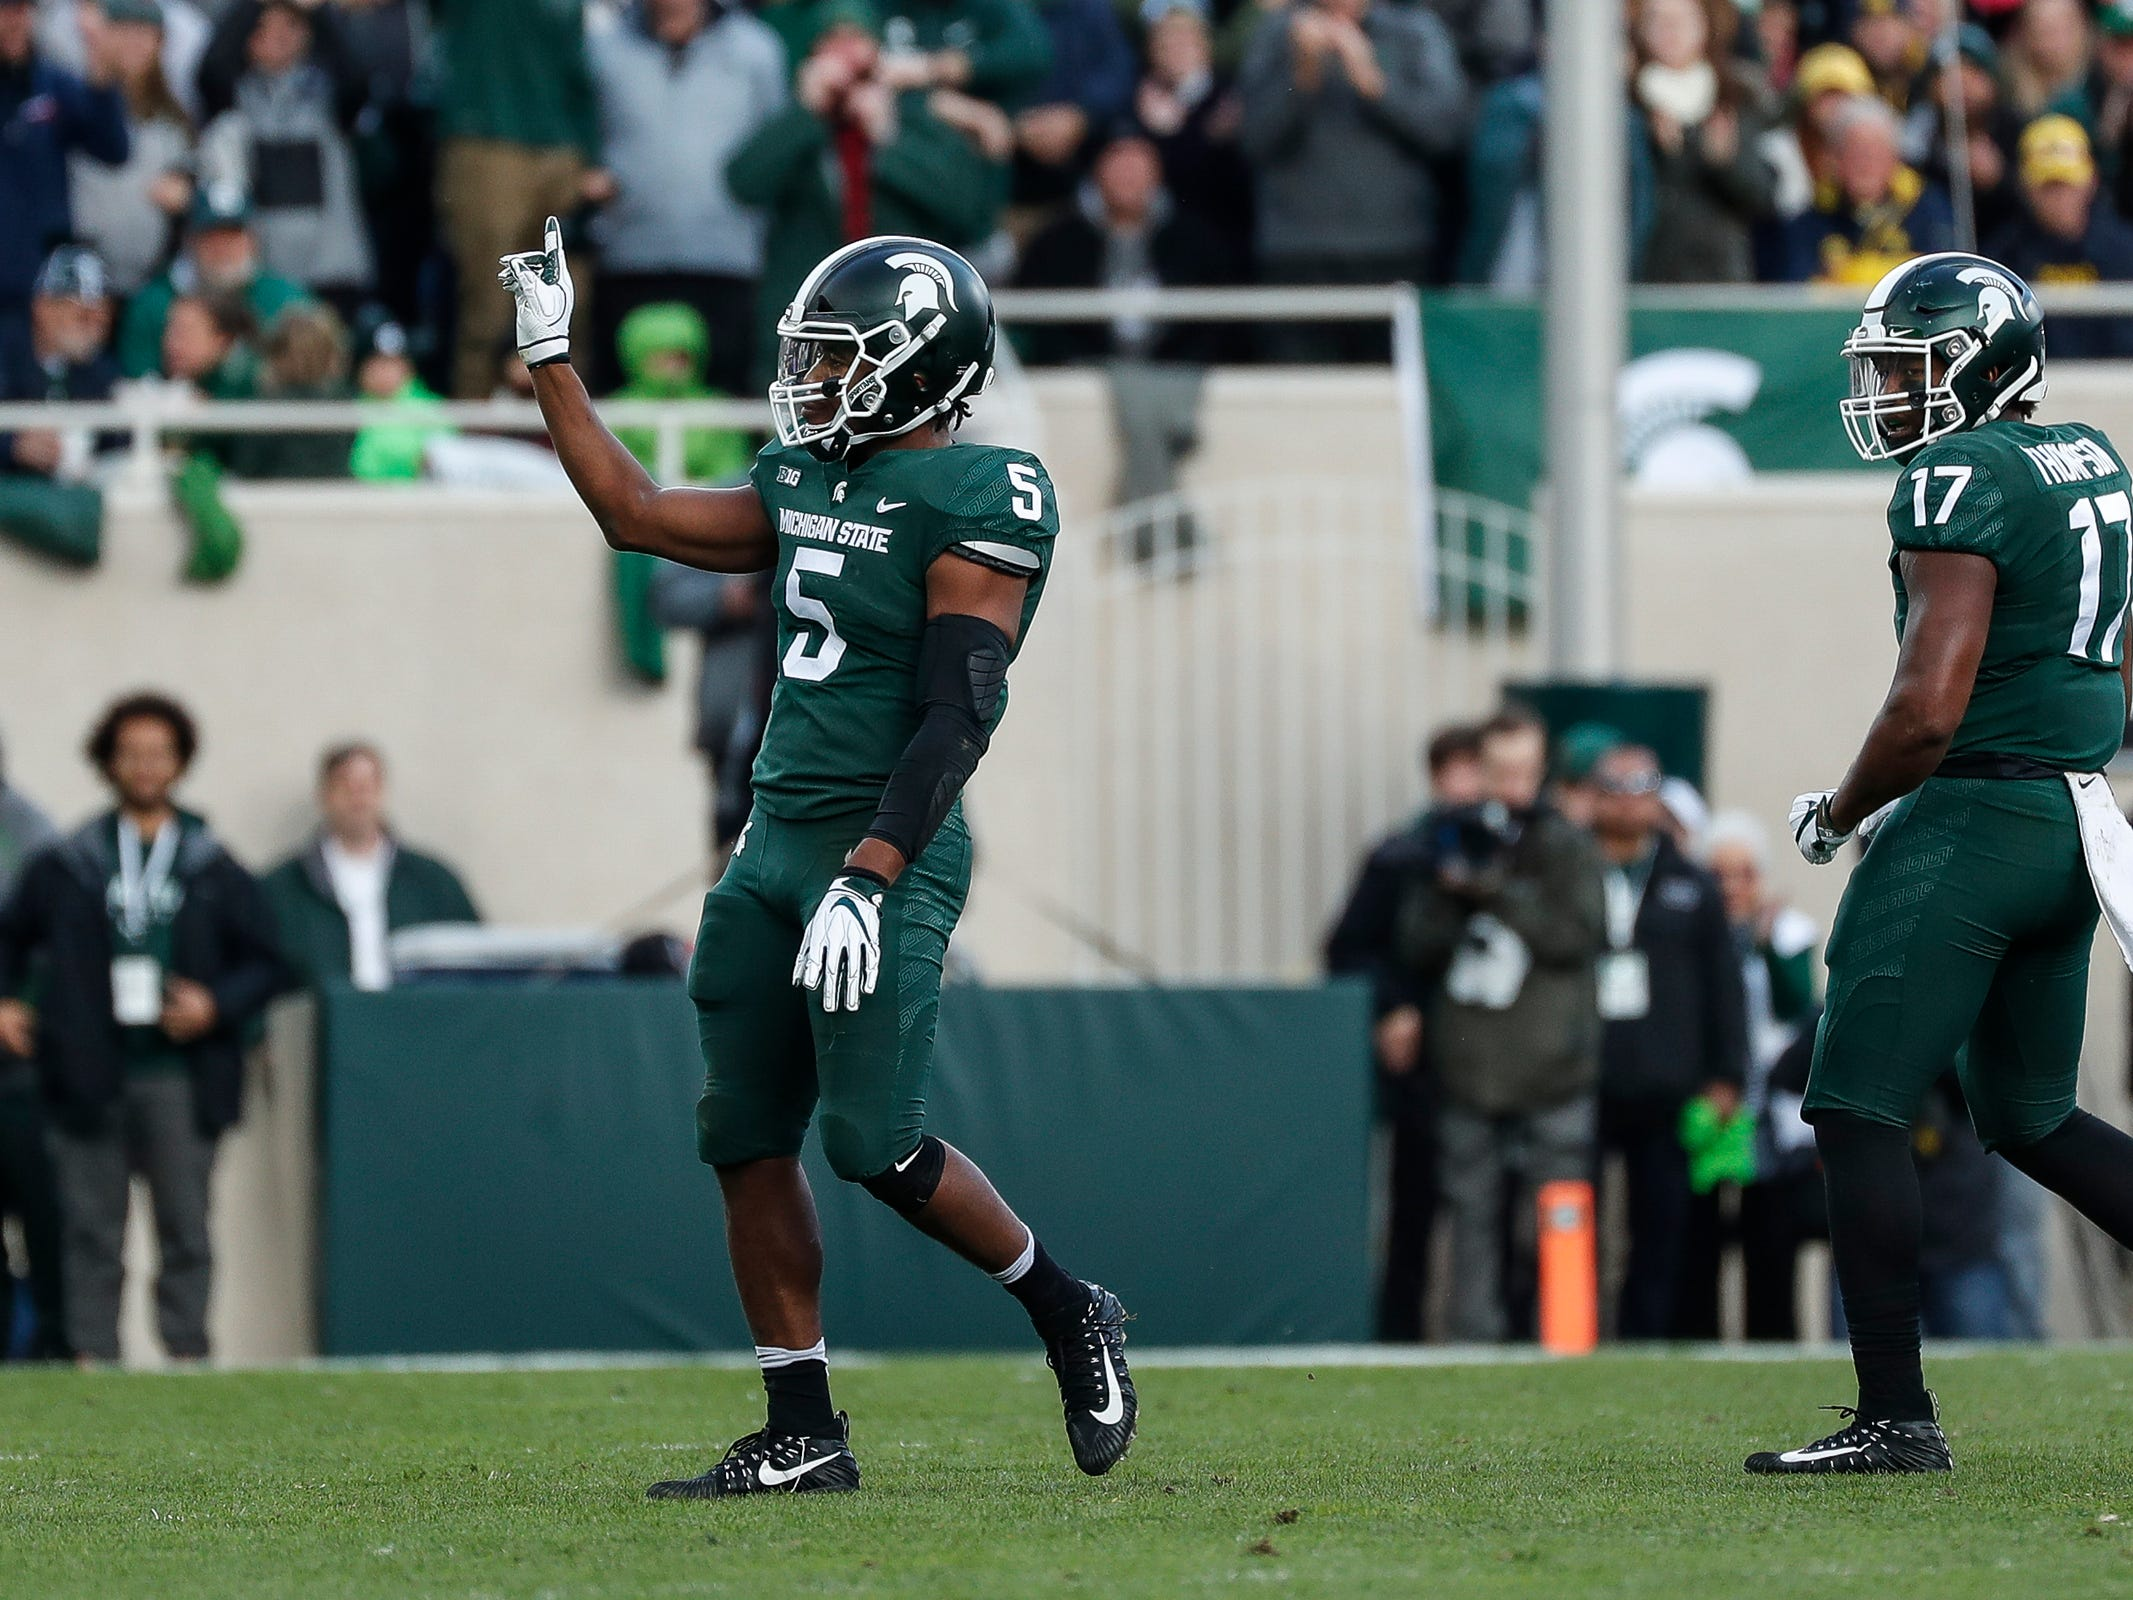 Michigan State linebacker Andrew Dowell celebrates a tackle against Michigan during the first half at Spartan Stadium on Saturday, Oct. 20, 2018.